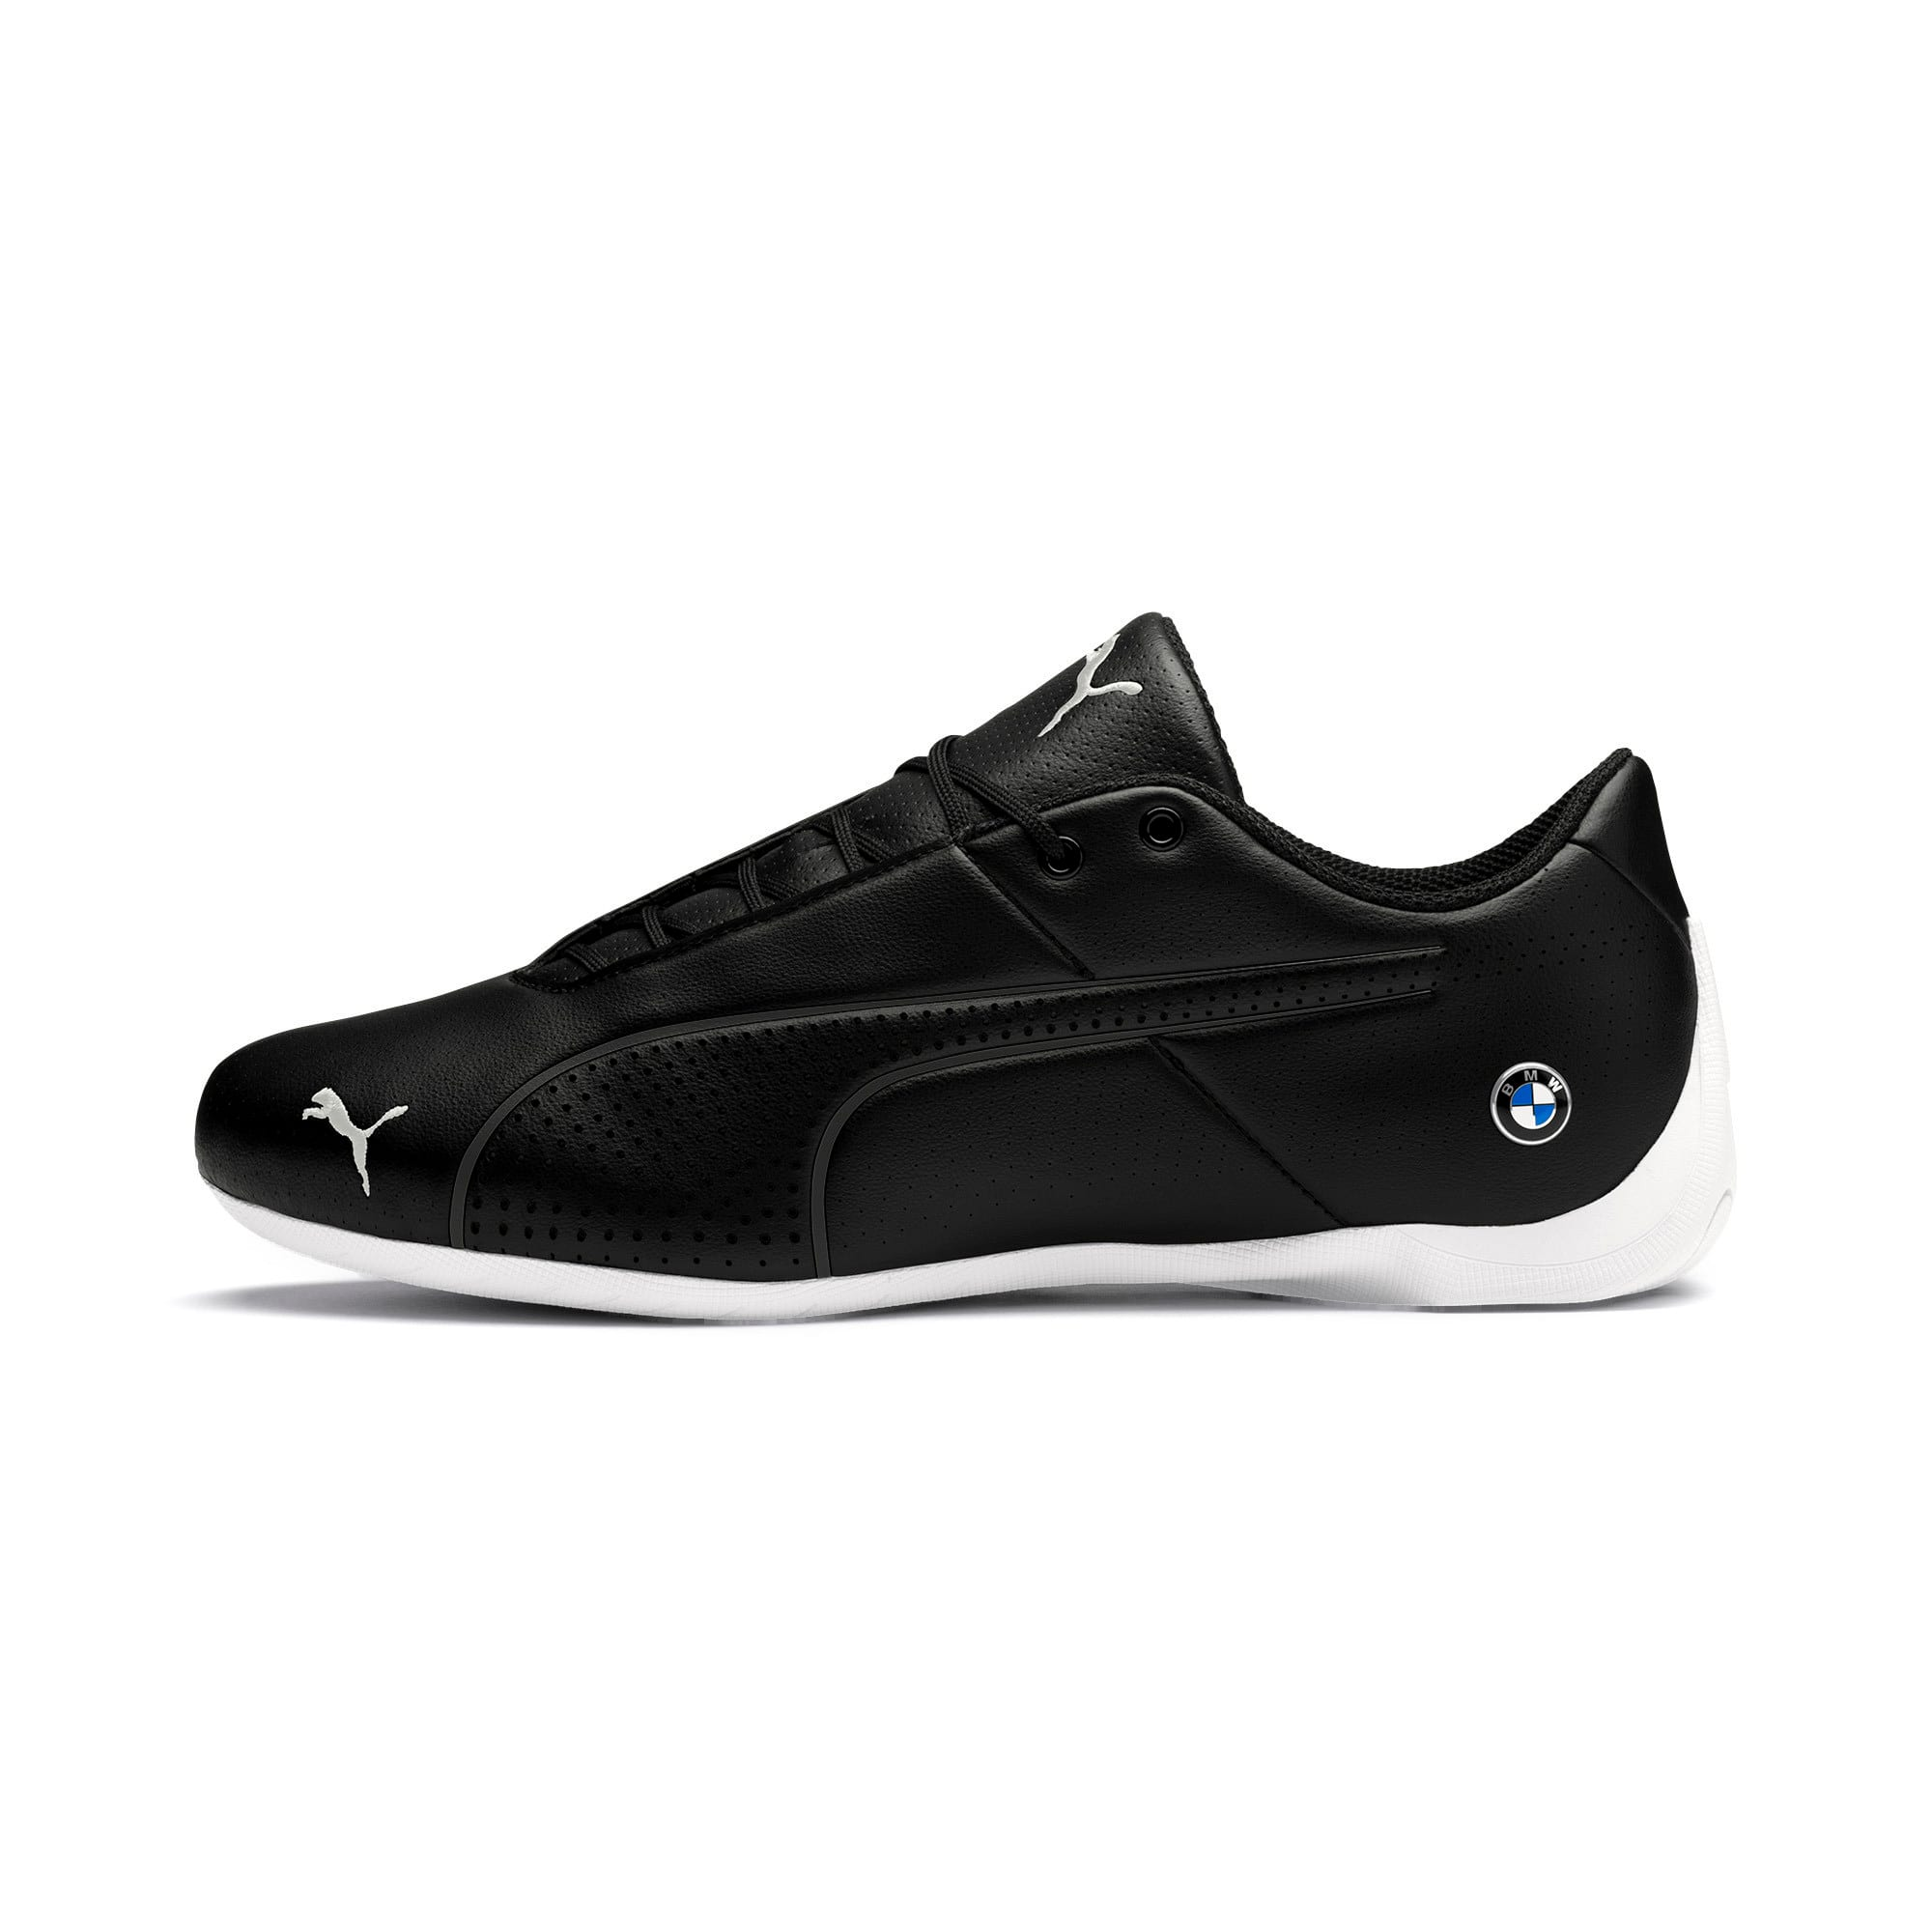 Thumbnail 1 of BMW Motorsport Future Cat Ultra Trainers, Black-White-Gray Violet, medium